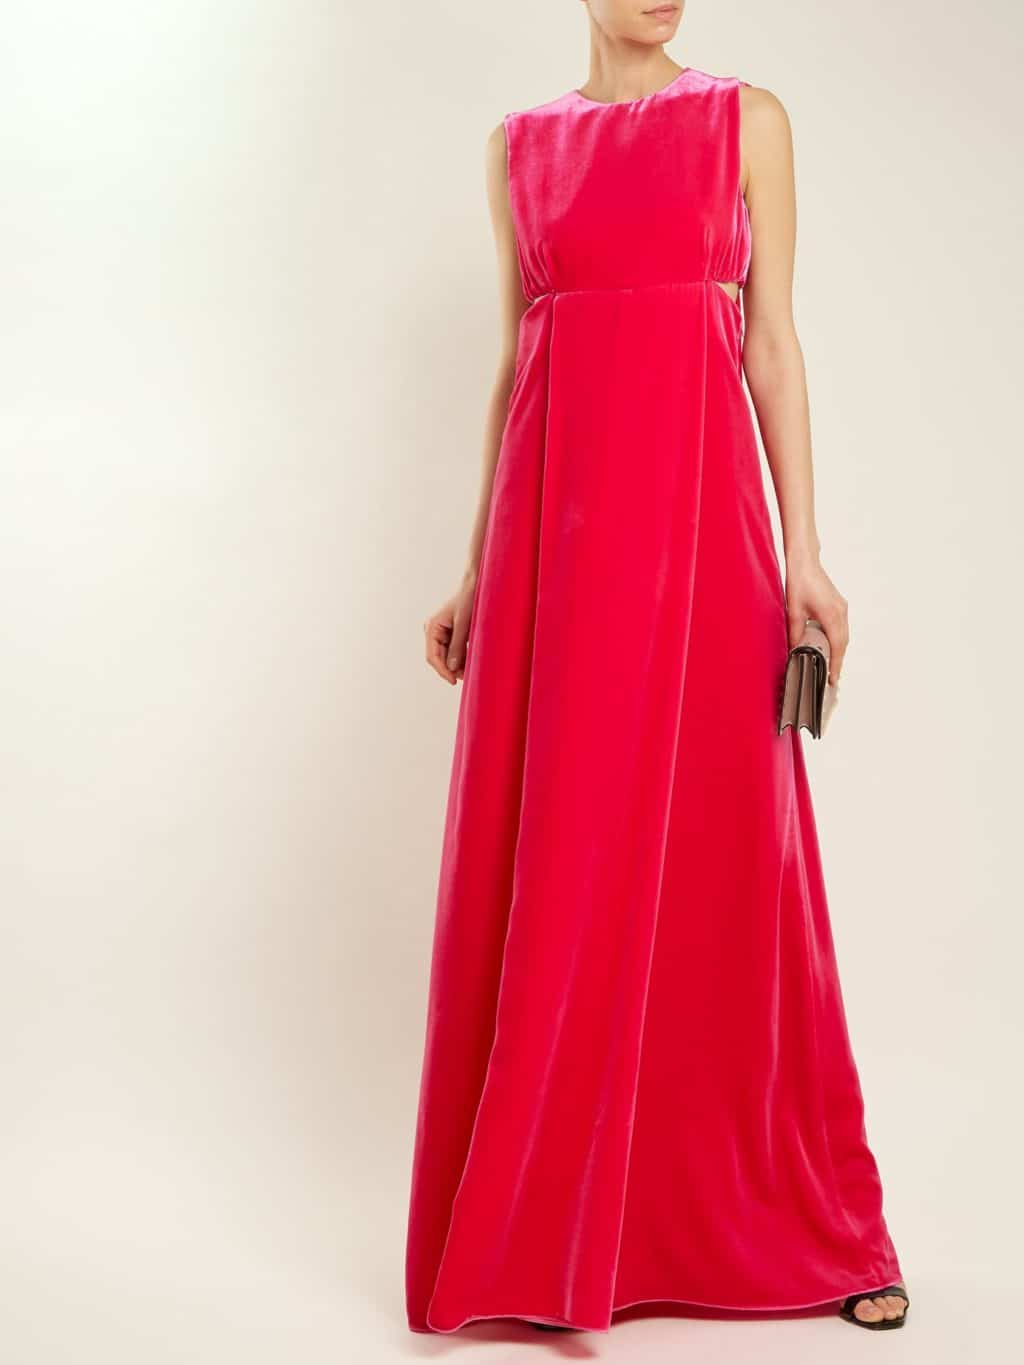 VALENTINO Cut Out Sleeveless Velvet Cerise Pink Gown